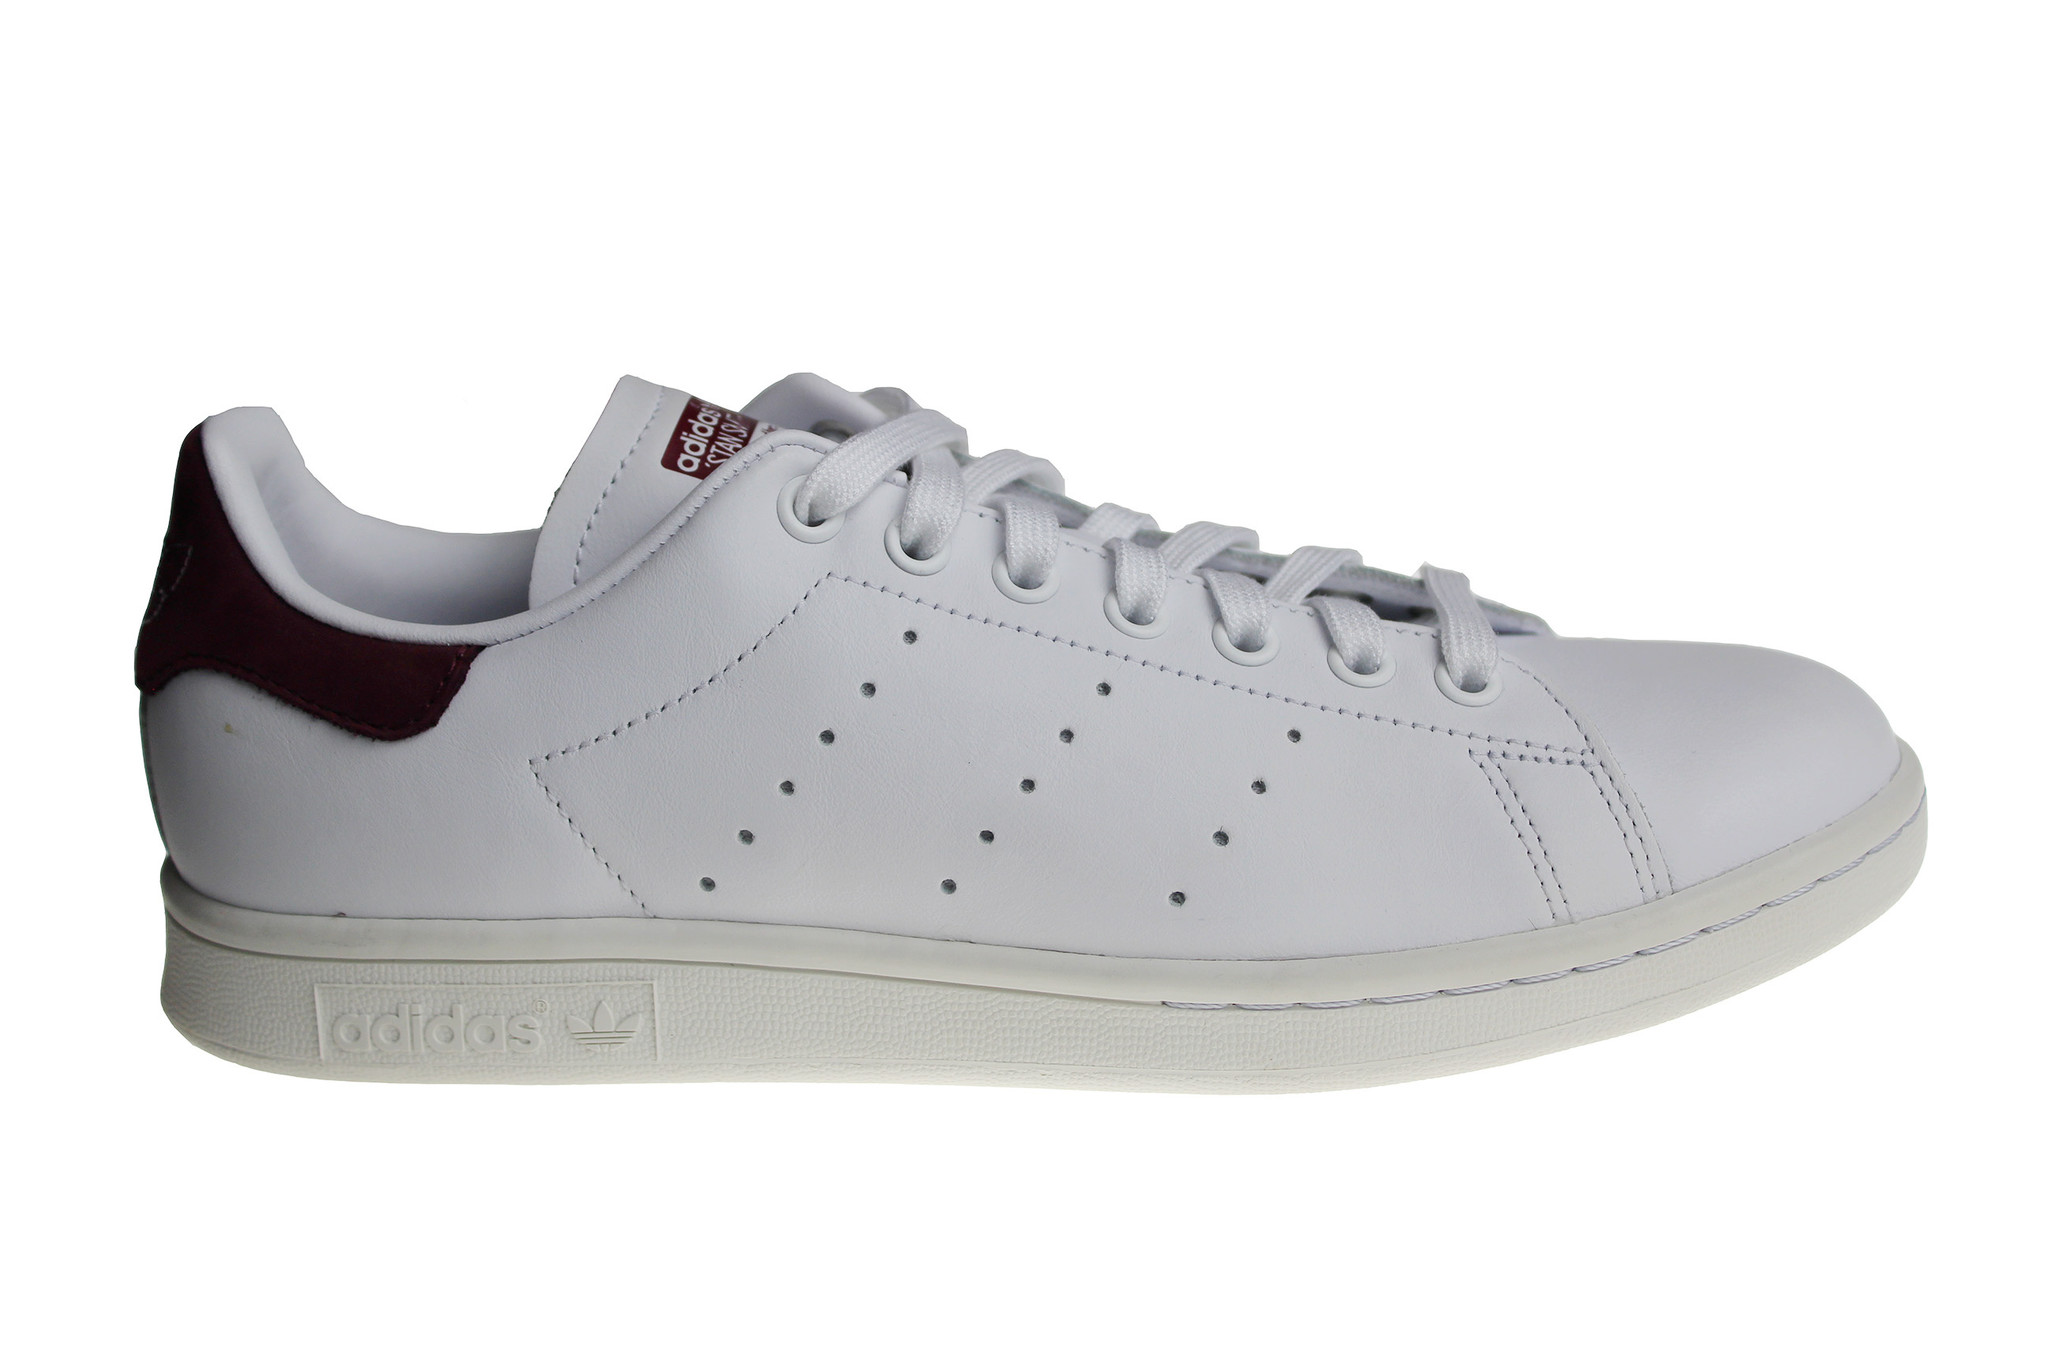 quality design 782d2 eab0c Adidas Stan Smith DB3526 White/Maroon Men's Shoe